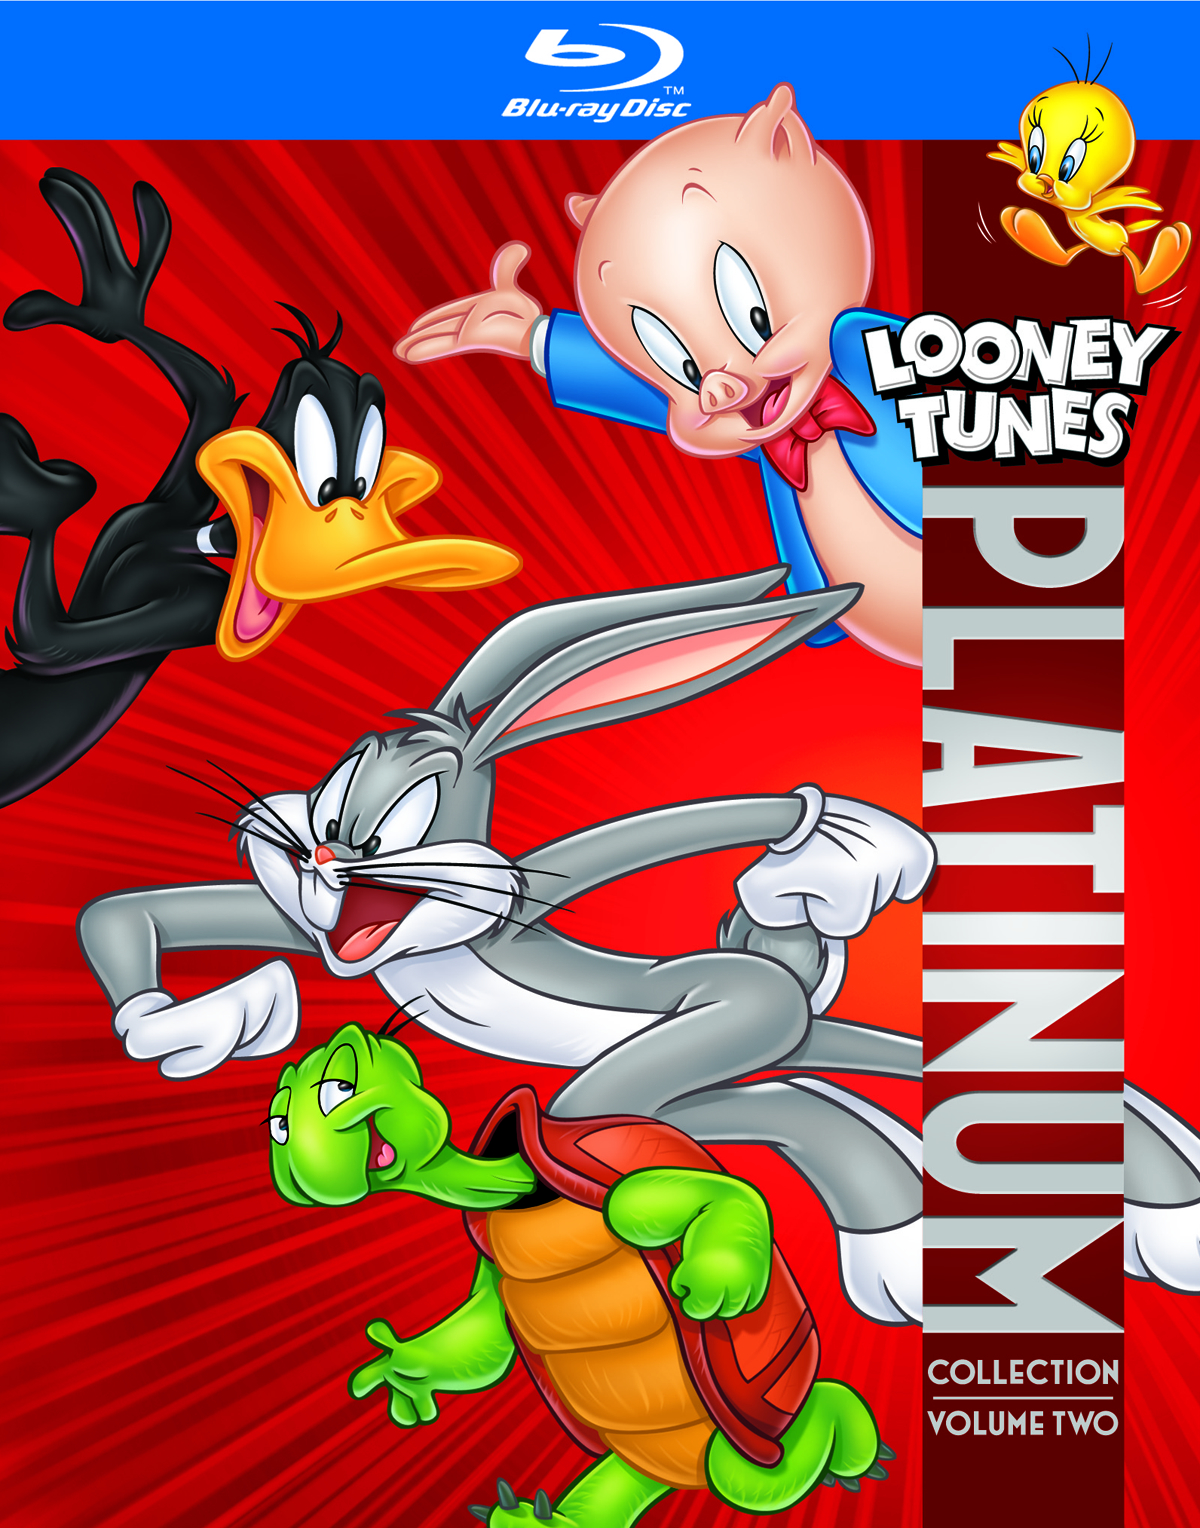 LOONEY TUNES PLATINUM COLL BD VOL 02